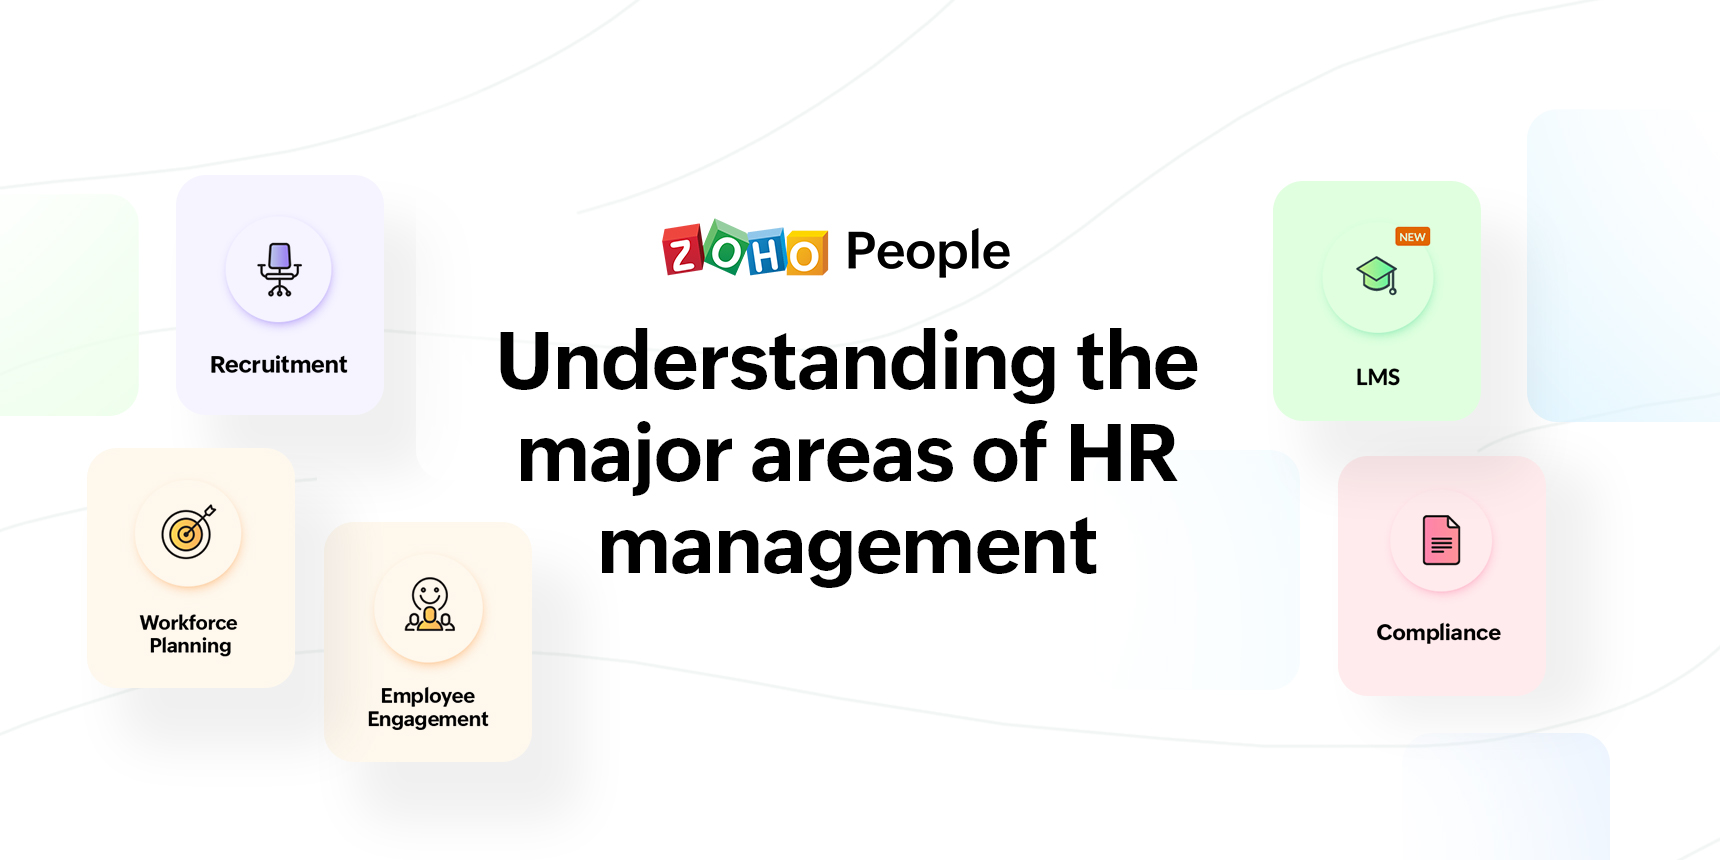 Five major areas of HR Management